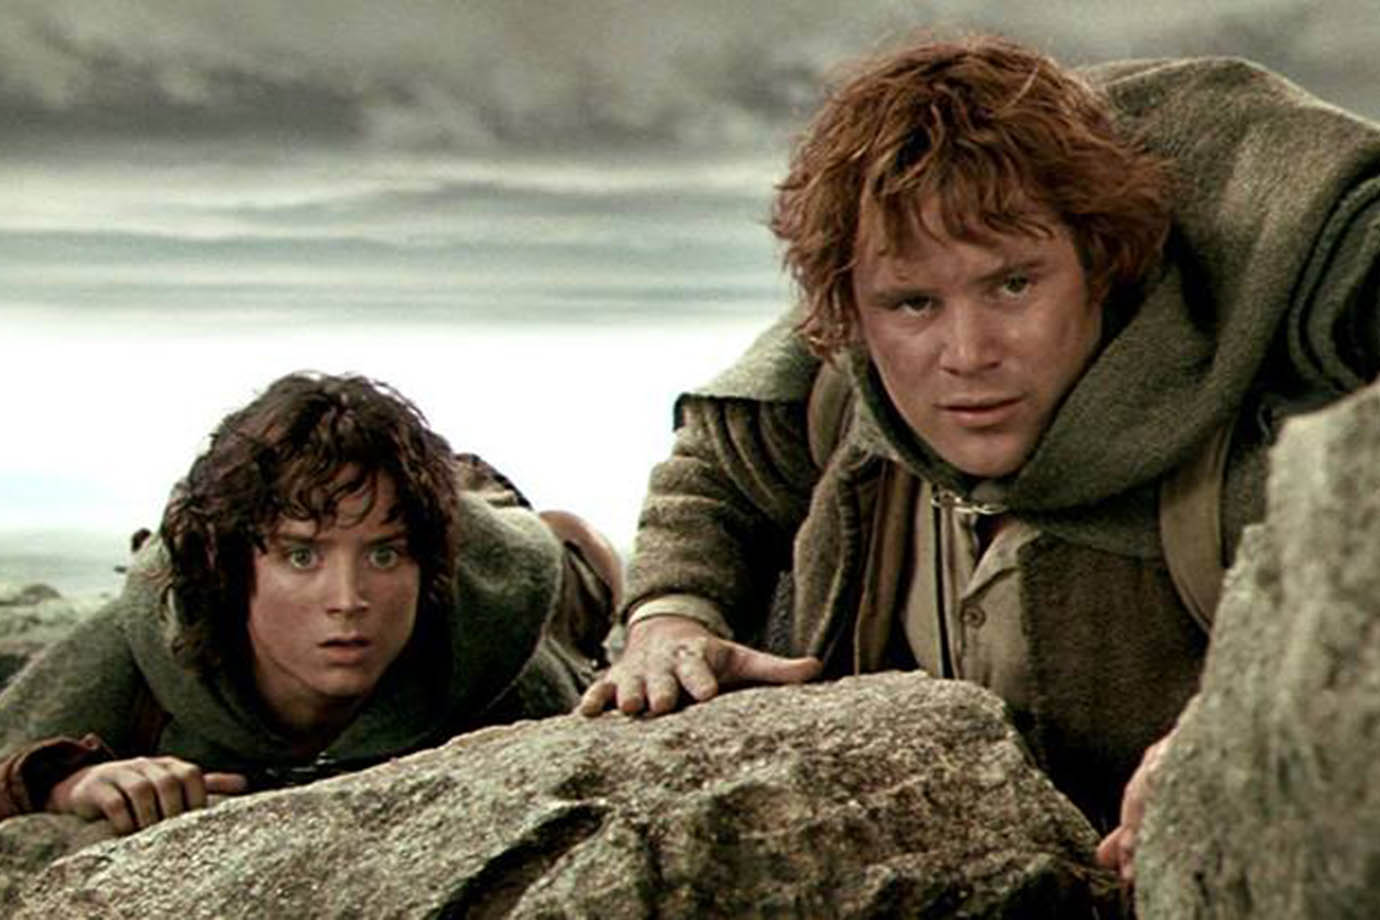 Amazon is bringing 'The Lord of the Rings' to the small screen.